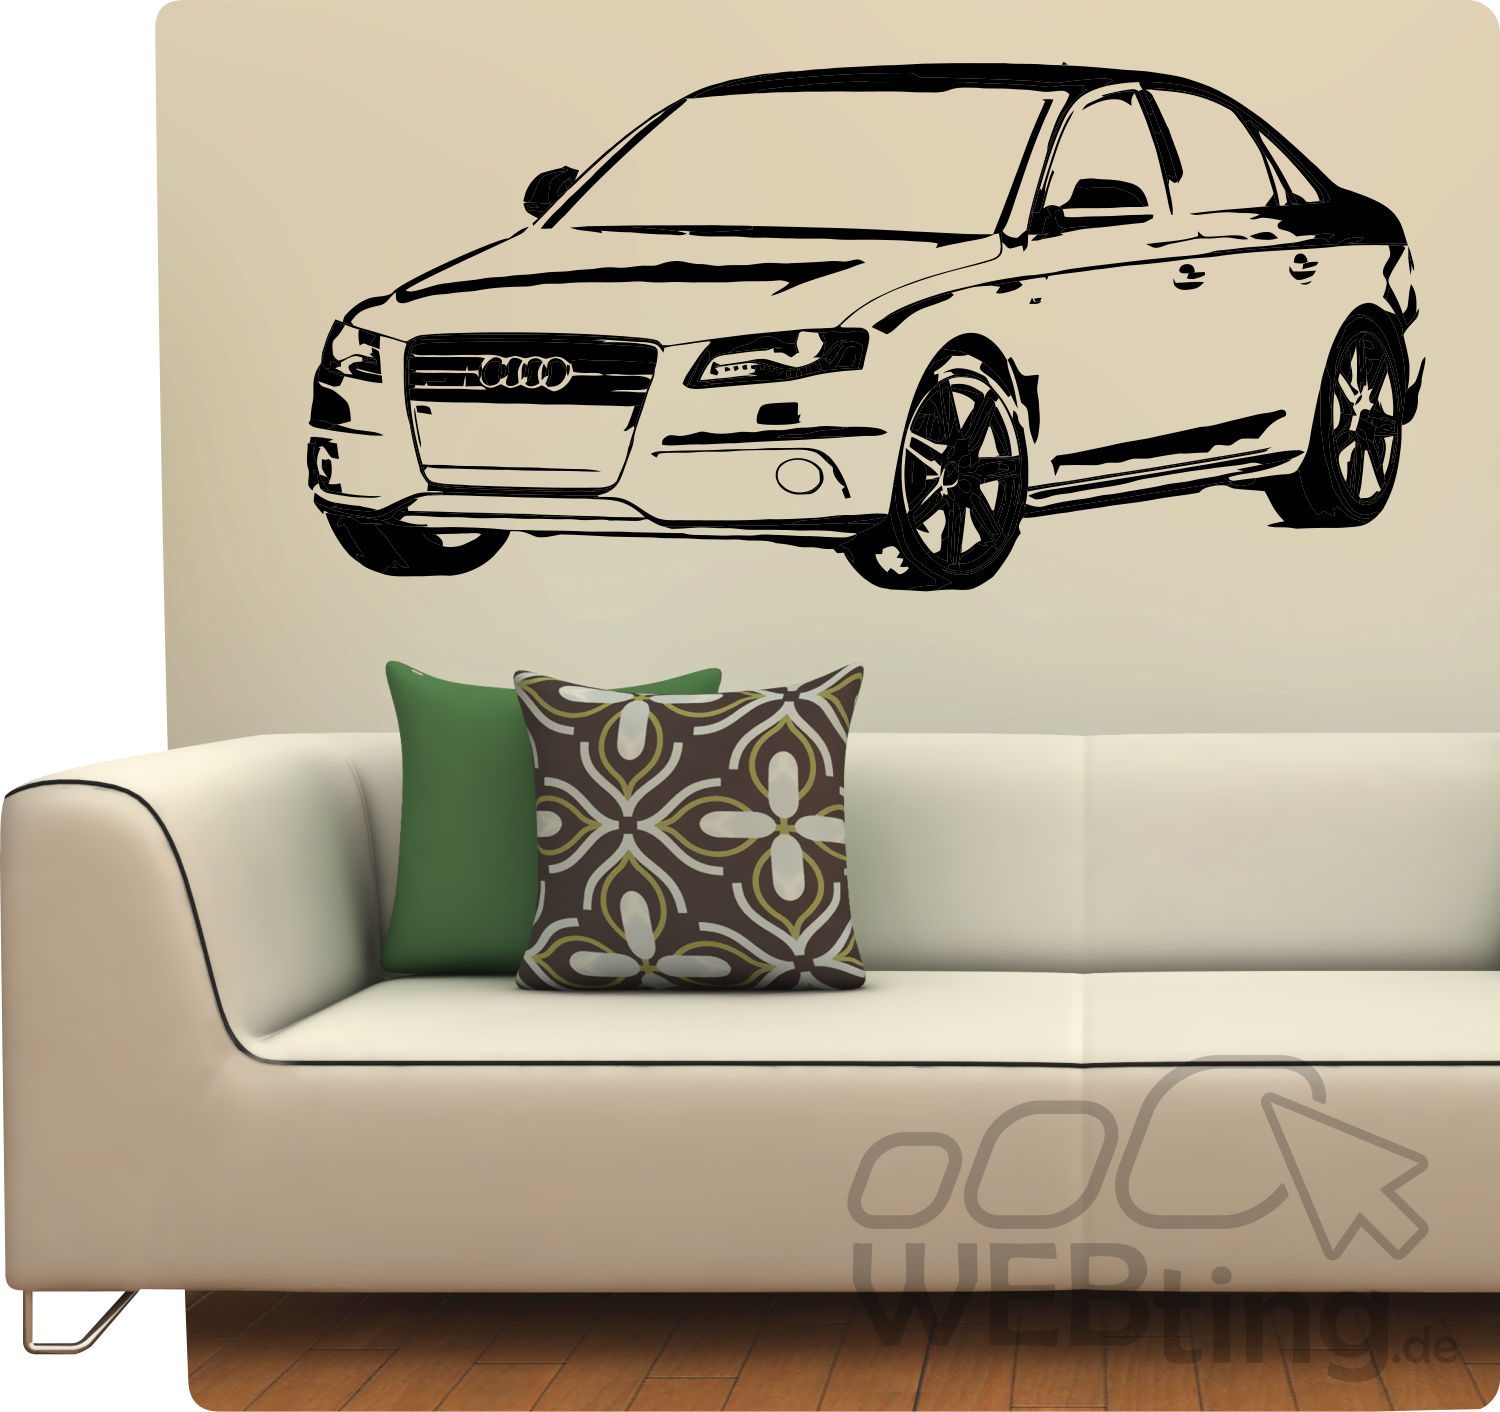 wandtattoo audi a3 auto s line a4 wandaufkleber motorsport. Black Bedroom Furniture Sets. Home Design Ideas